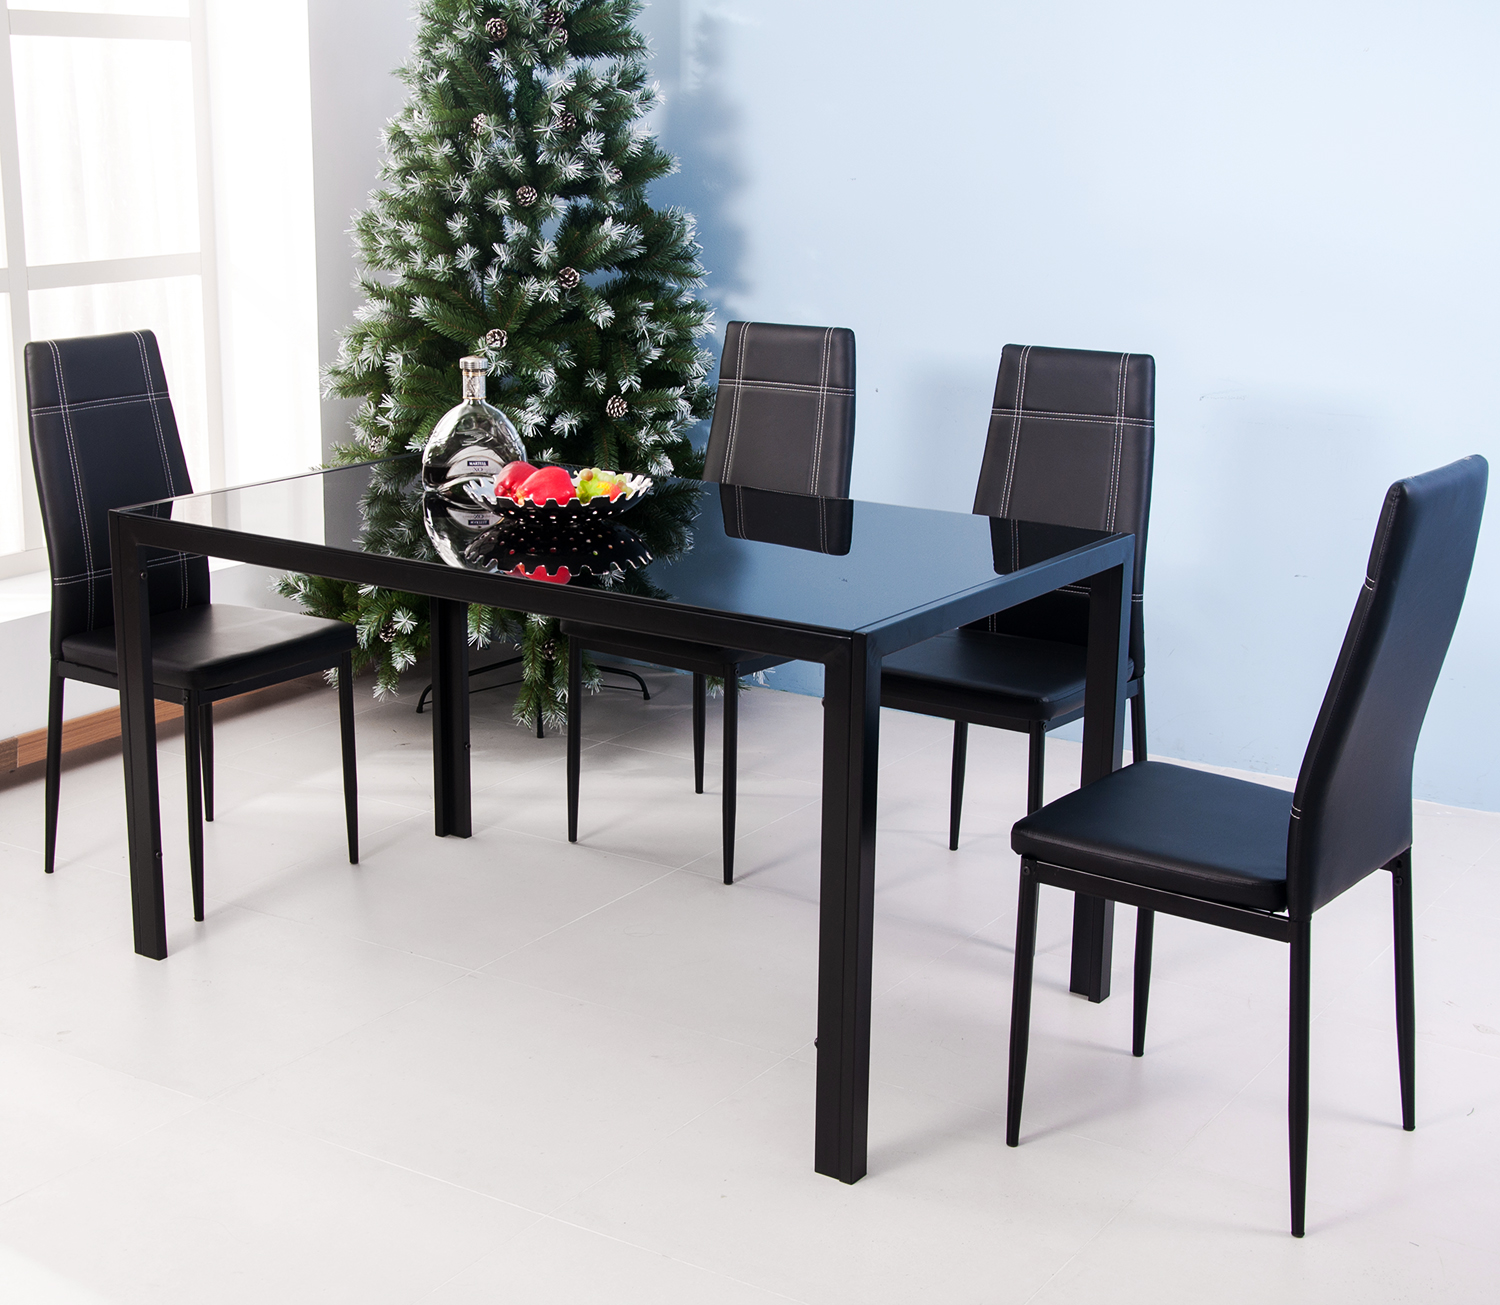 clearance 5 piece dining table set for 4 person modern on dining room sets on clearance id=44633